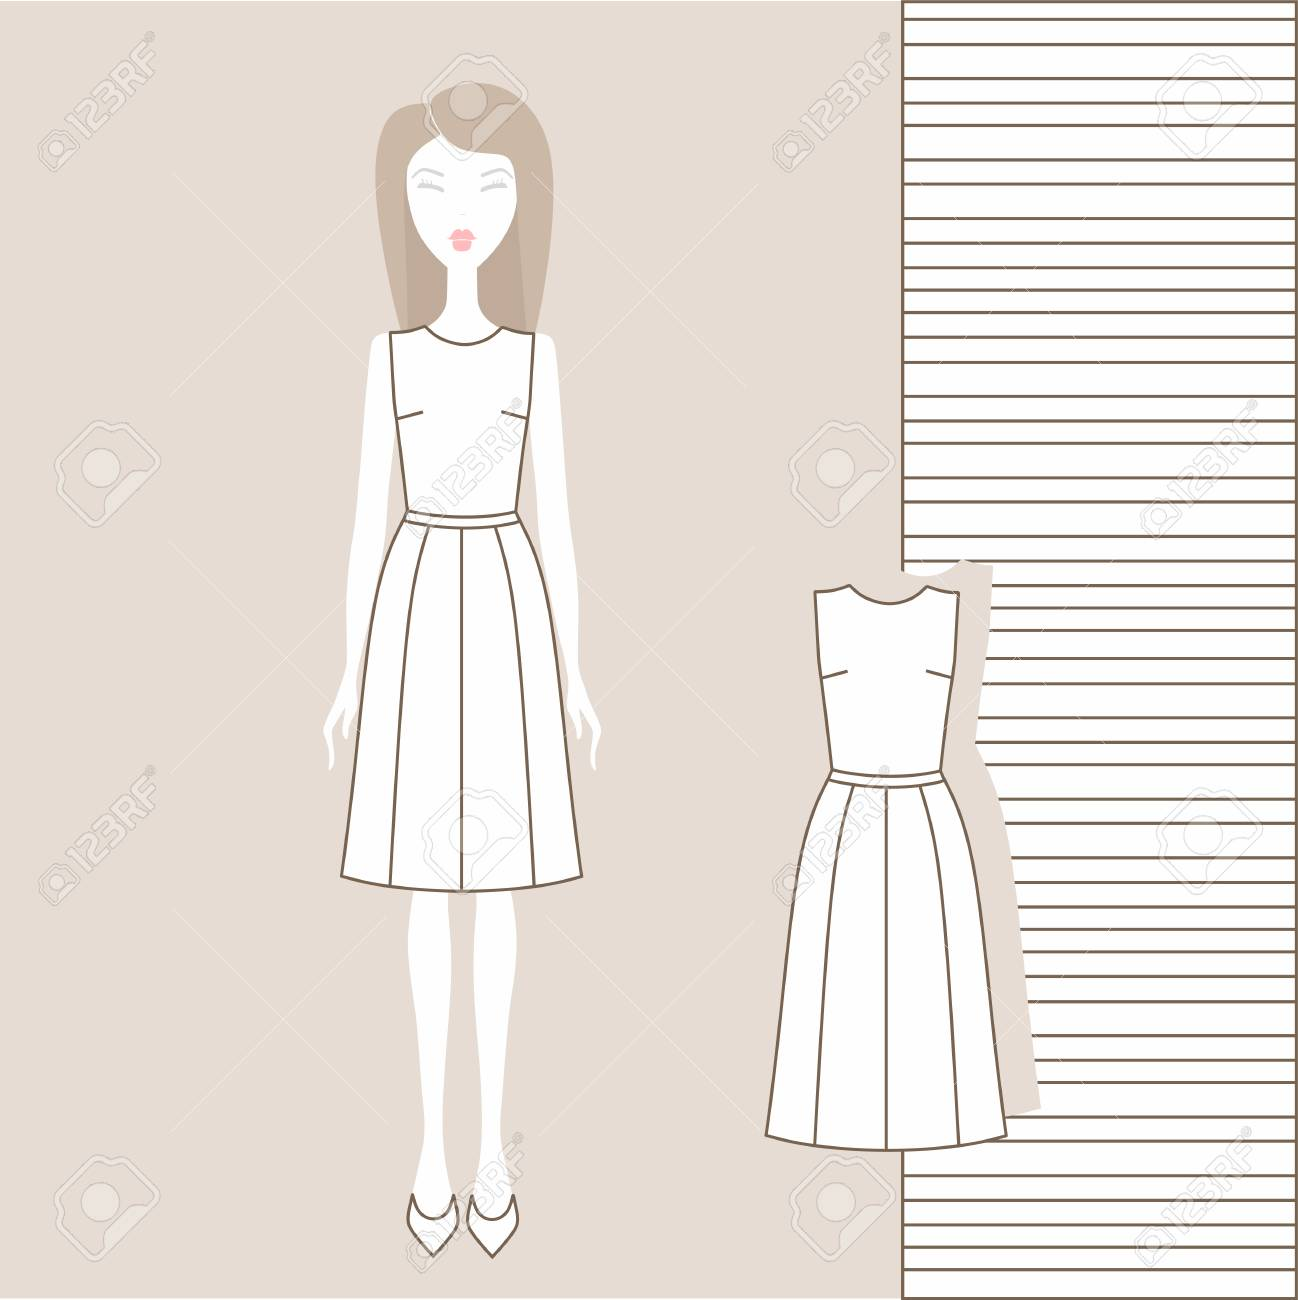 ad6cec5c64919f Girl in fashionable clothes, skirt, blouse, jumper, tank top. Stock Vector